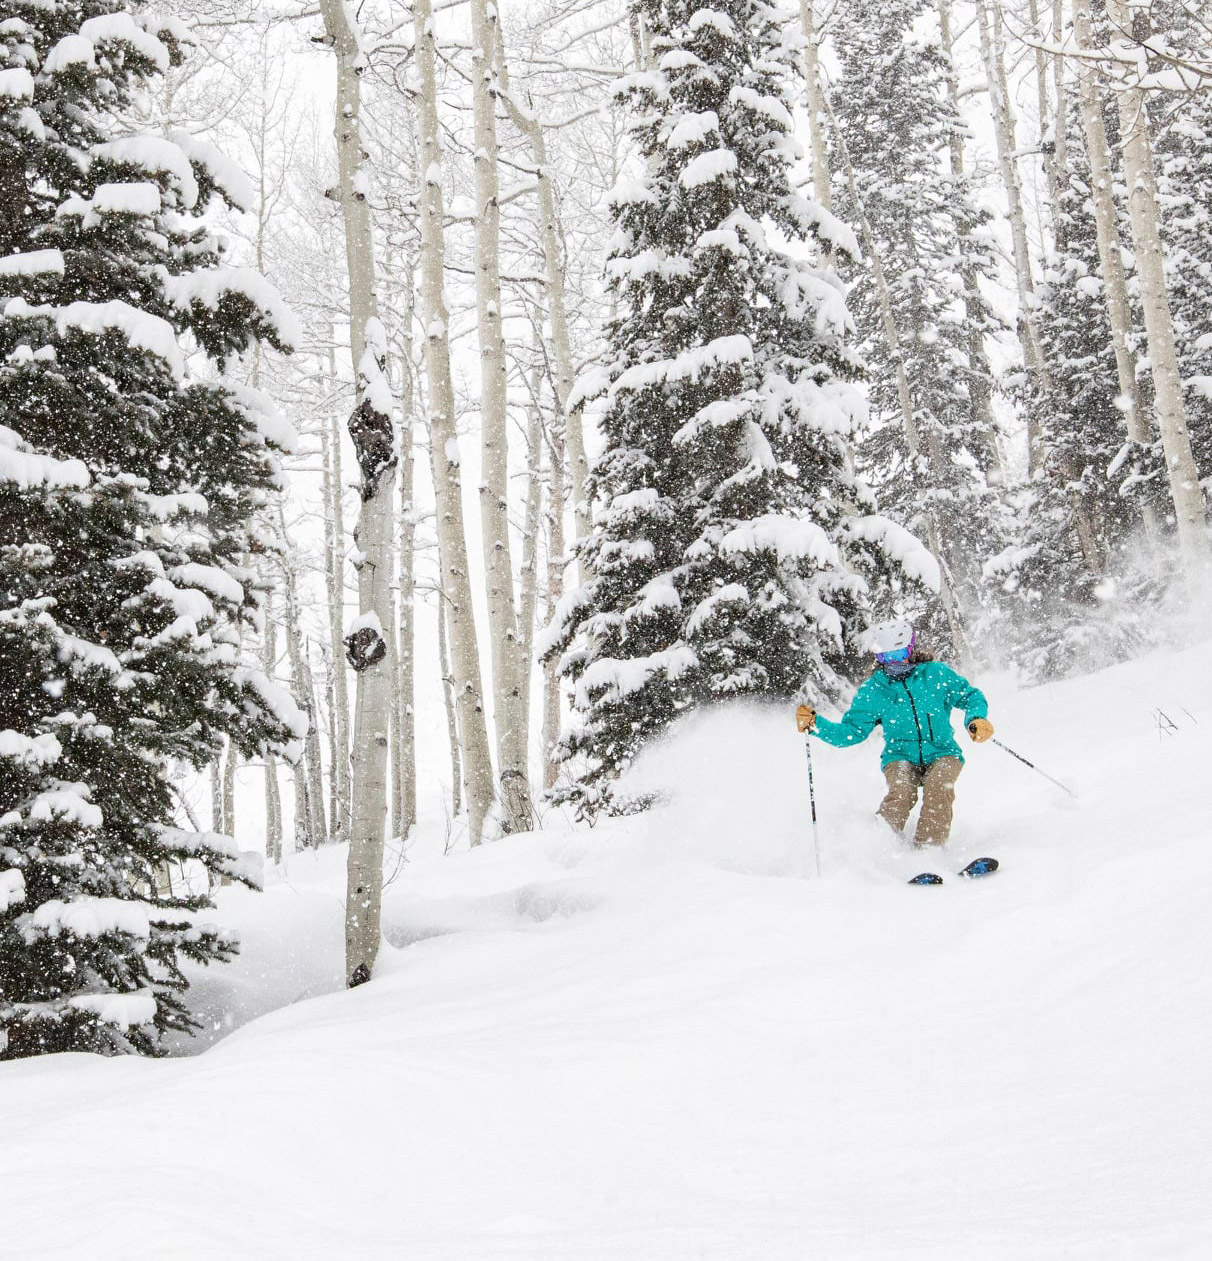 great conditions, Crested Butte